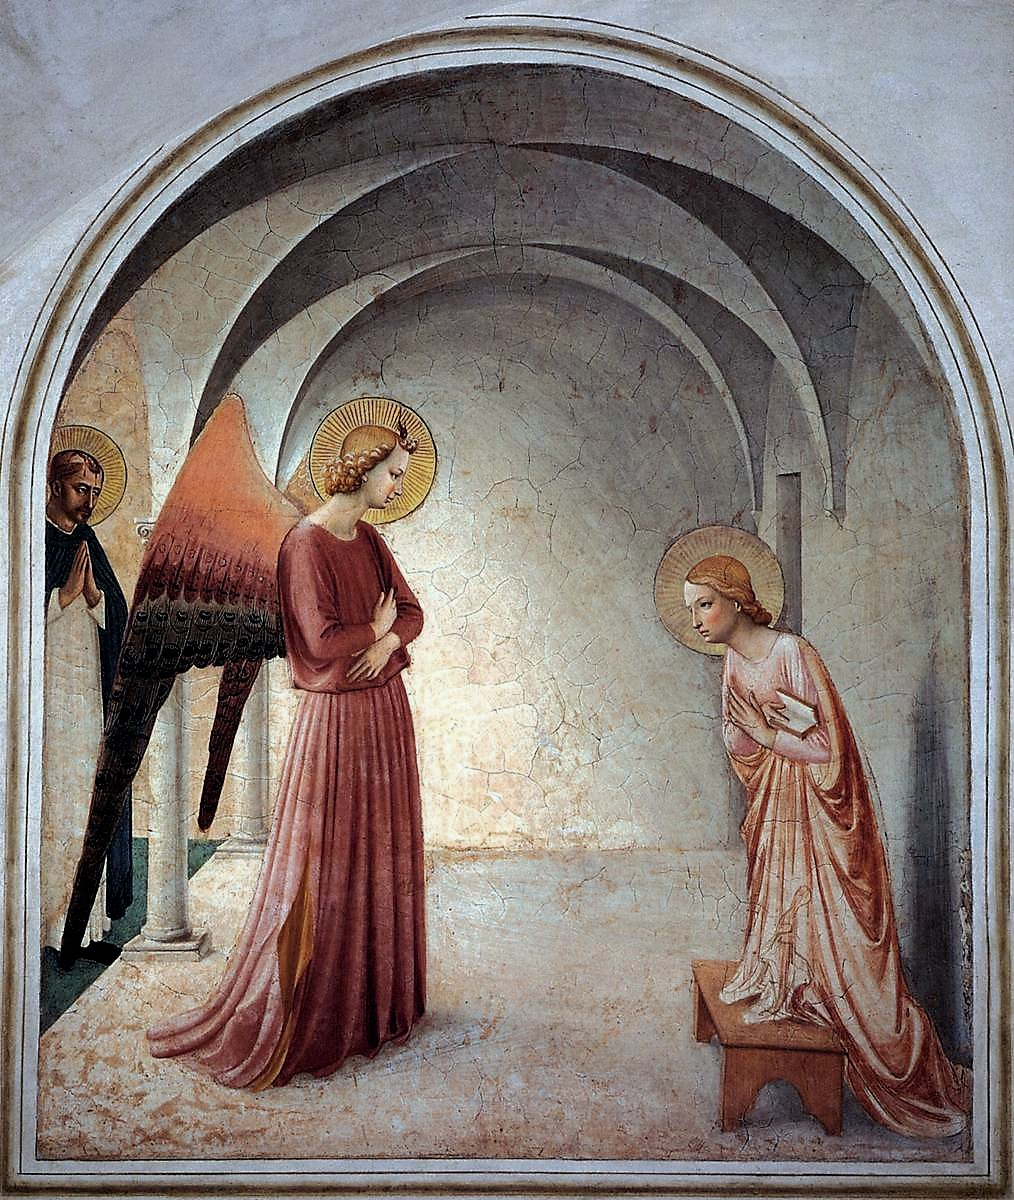 The Annunciation, Part VI: The Annunciation Witnessed